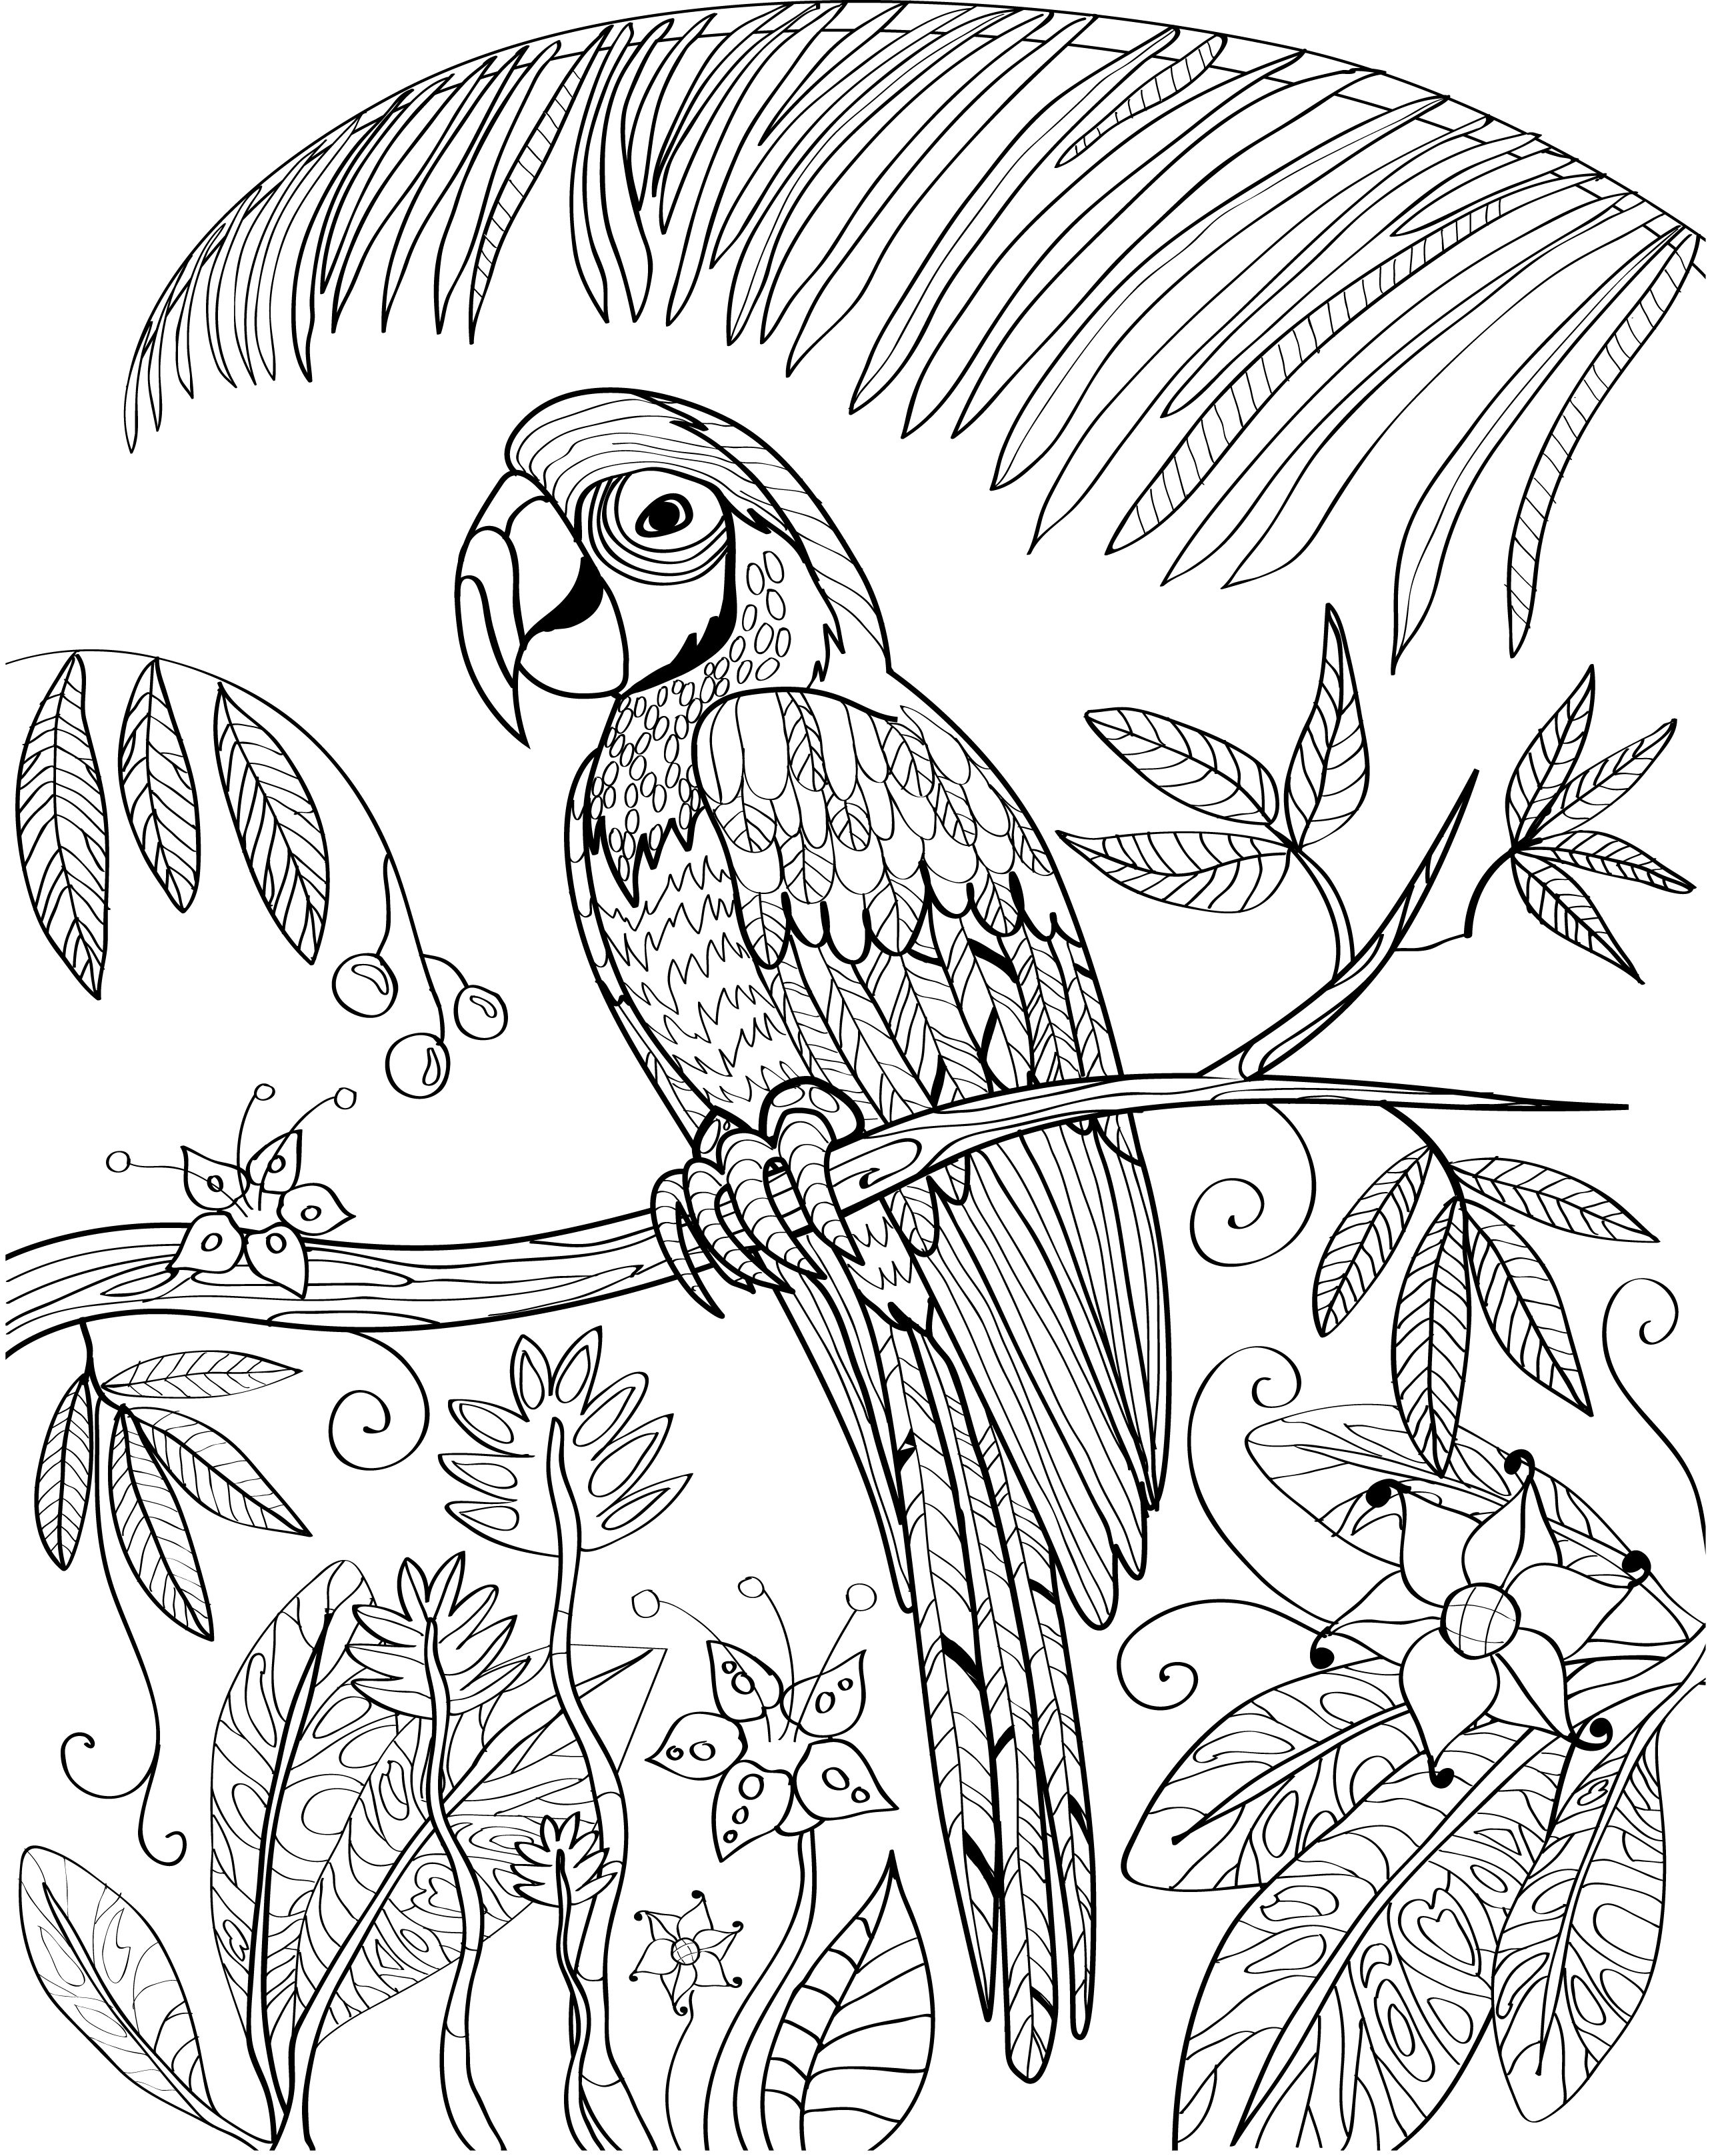 free adultcoloringbook bird tropical macaw parrot